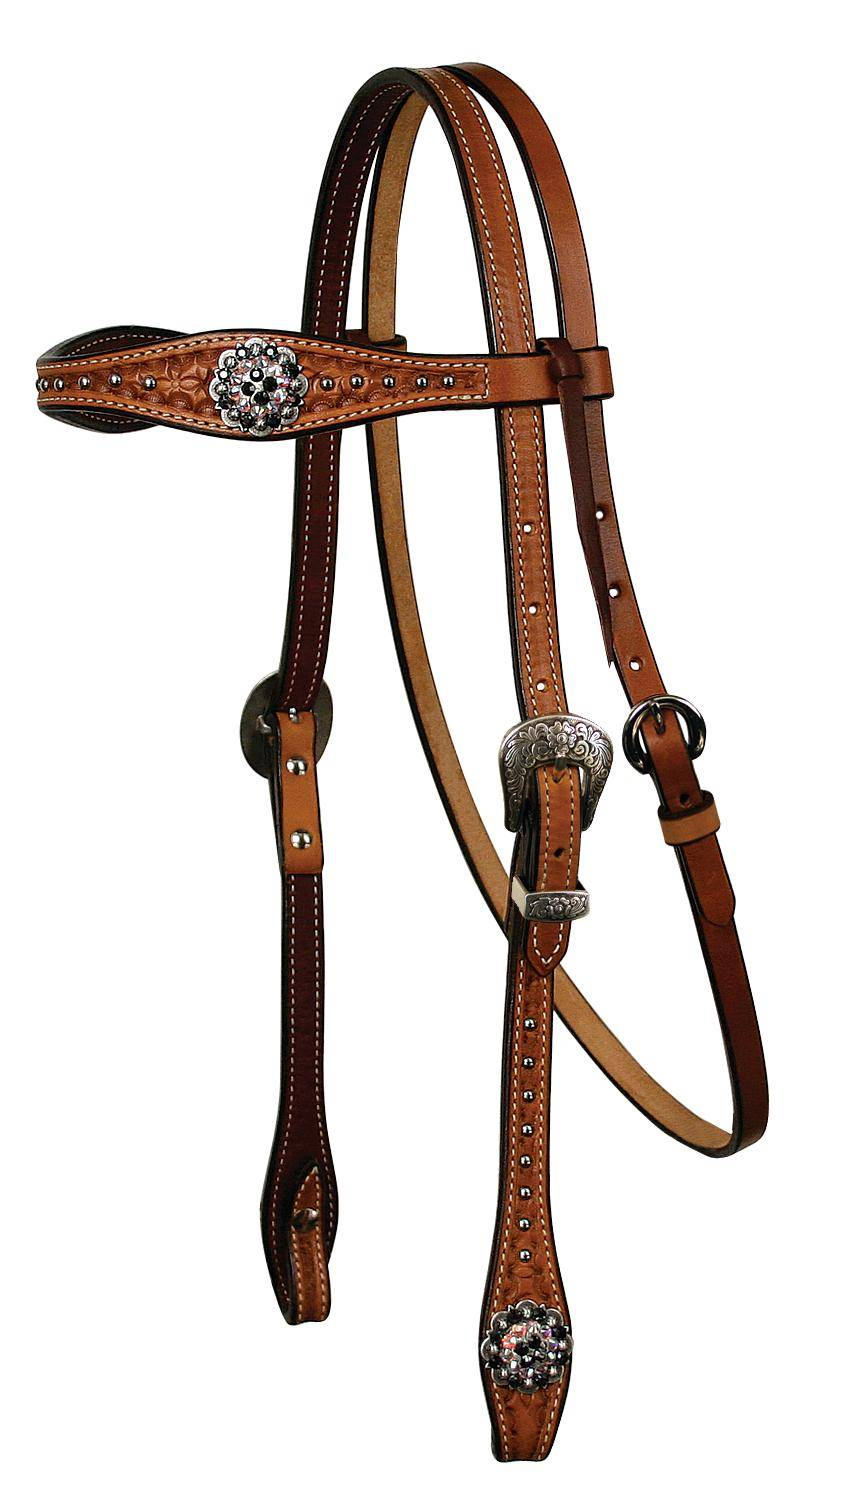 REINSMAN Molly Powell X-Treme Series - Browband Headstall With Crystal Conchos